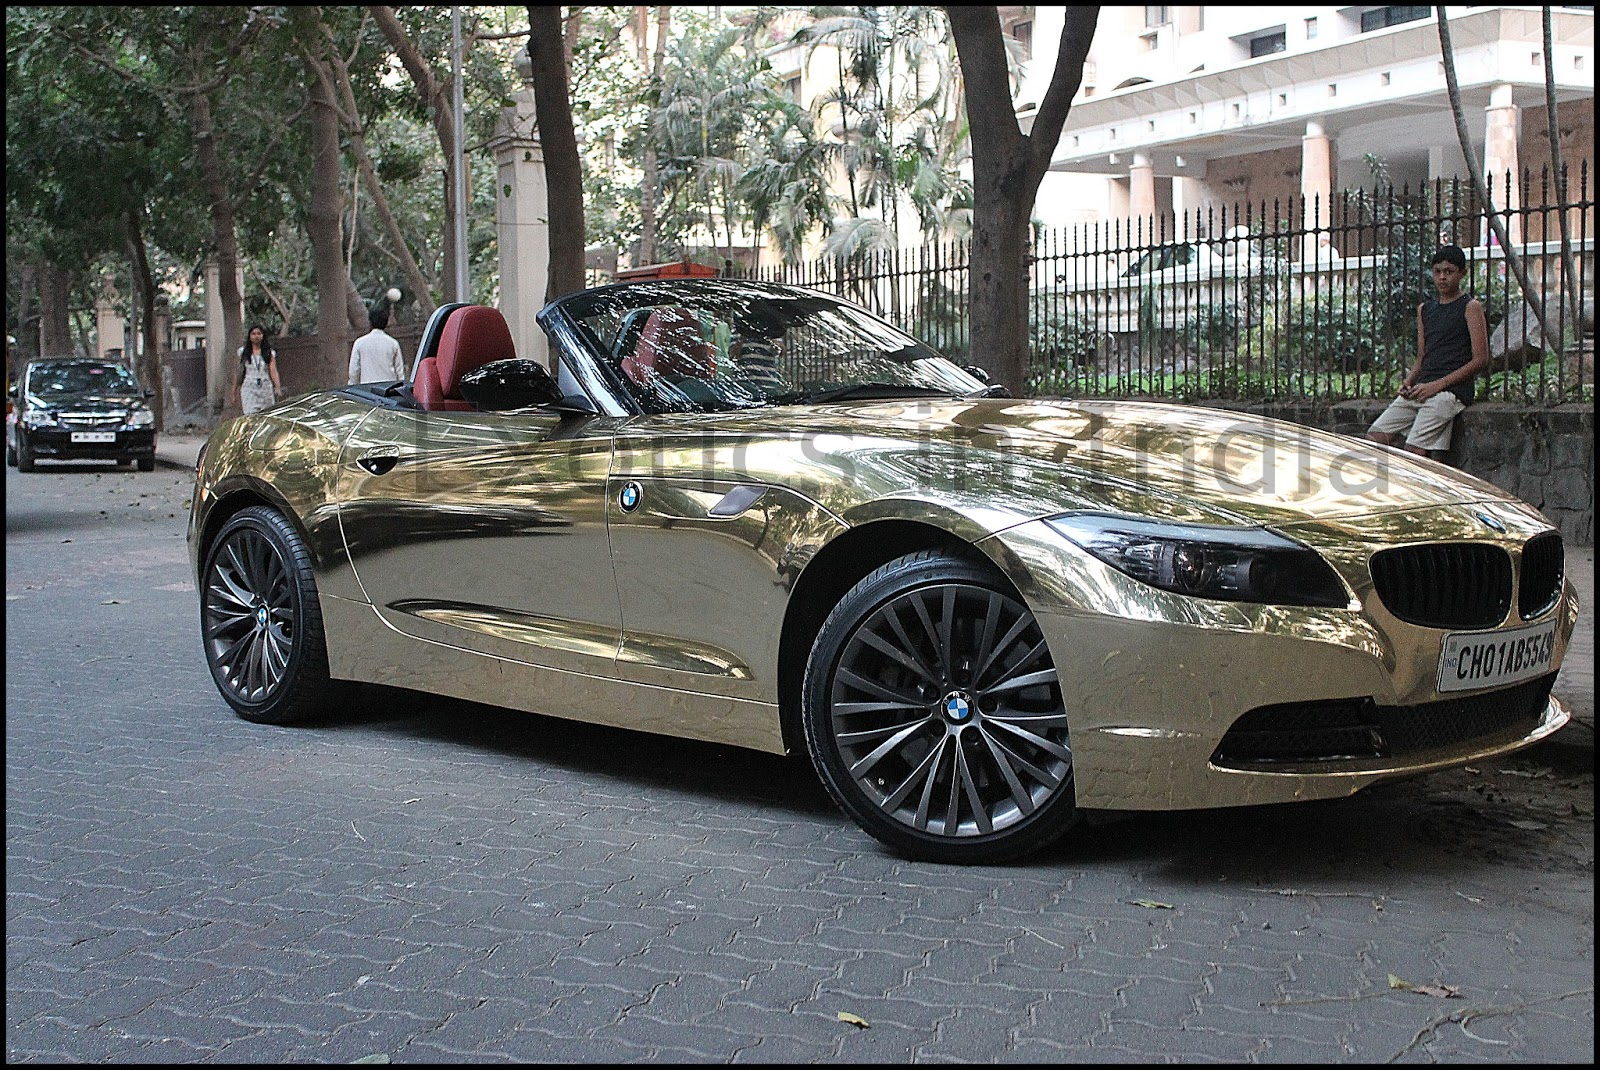 Exotics In India Midas Touch Or The Golden Egg D A D S